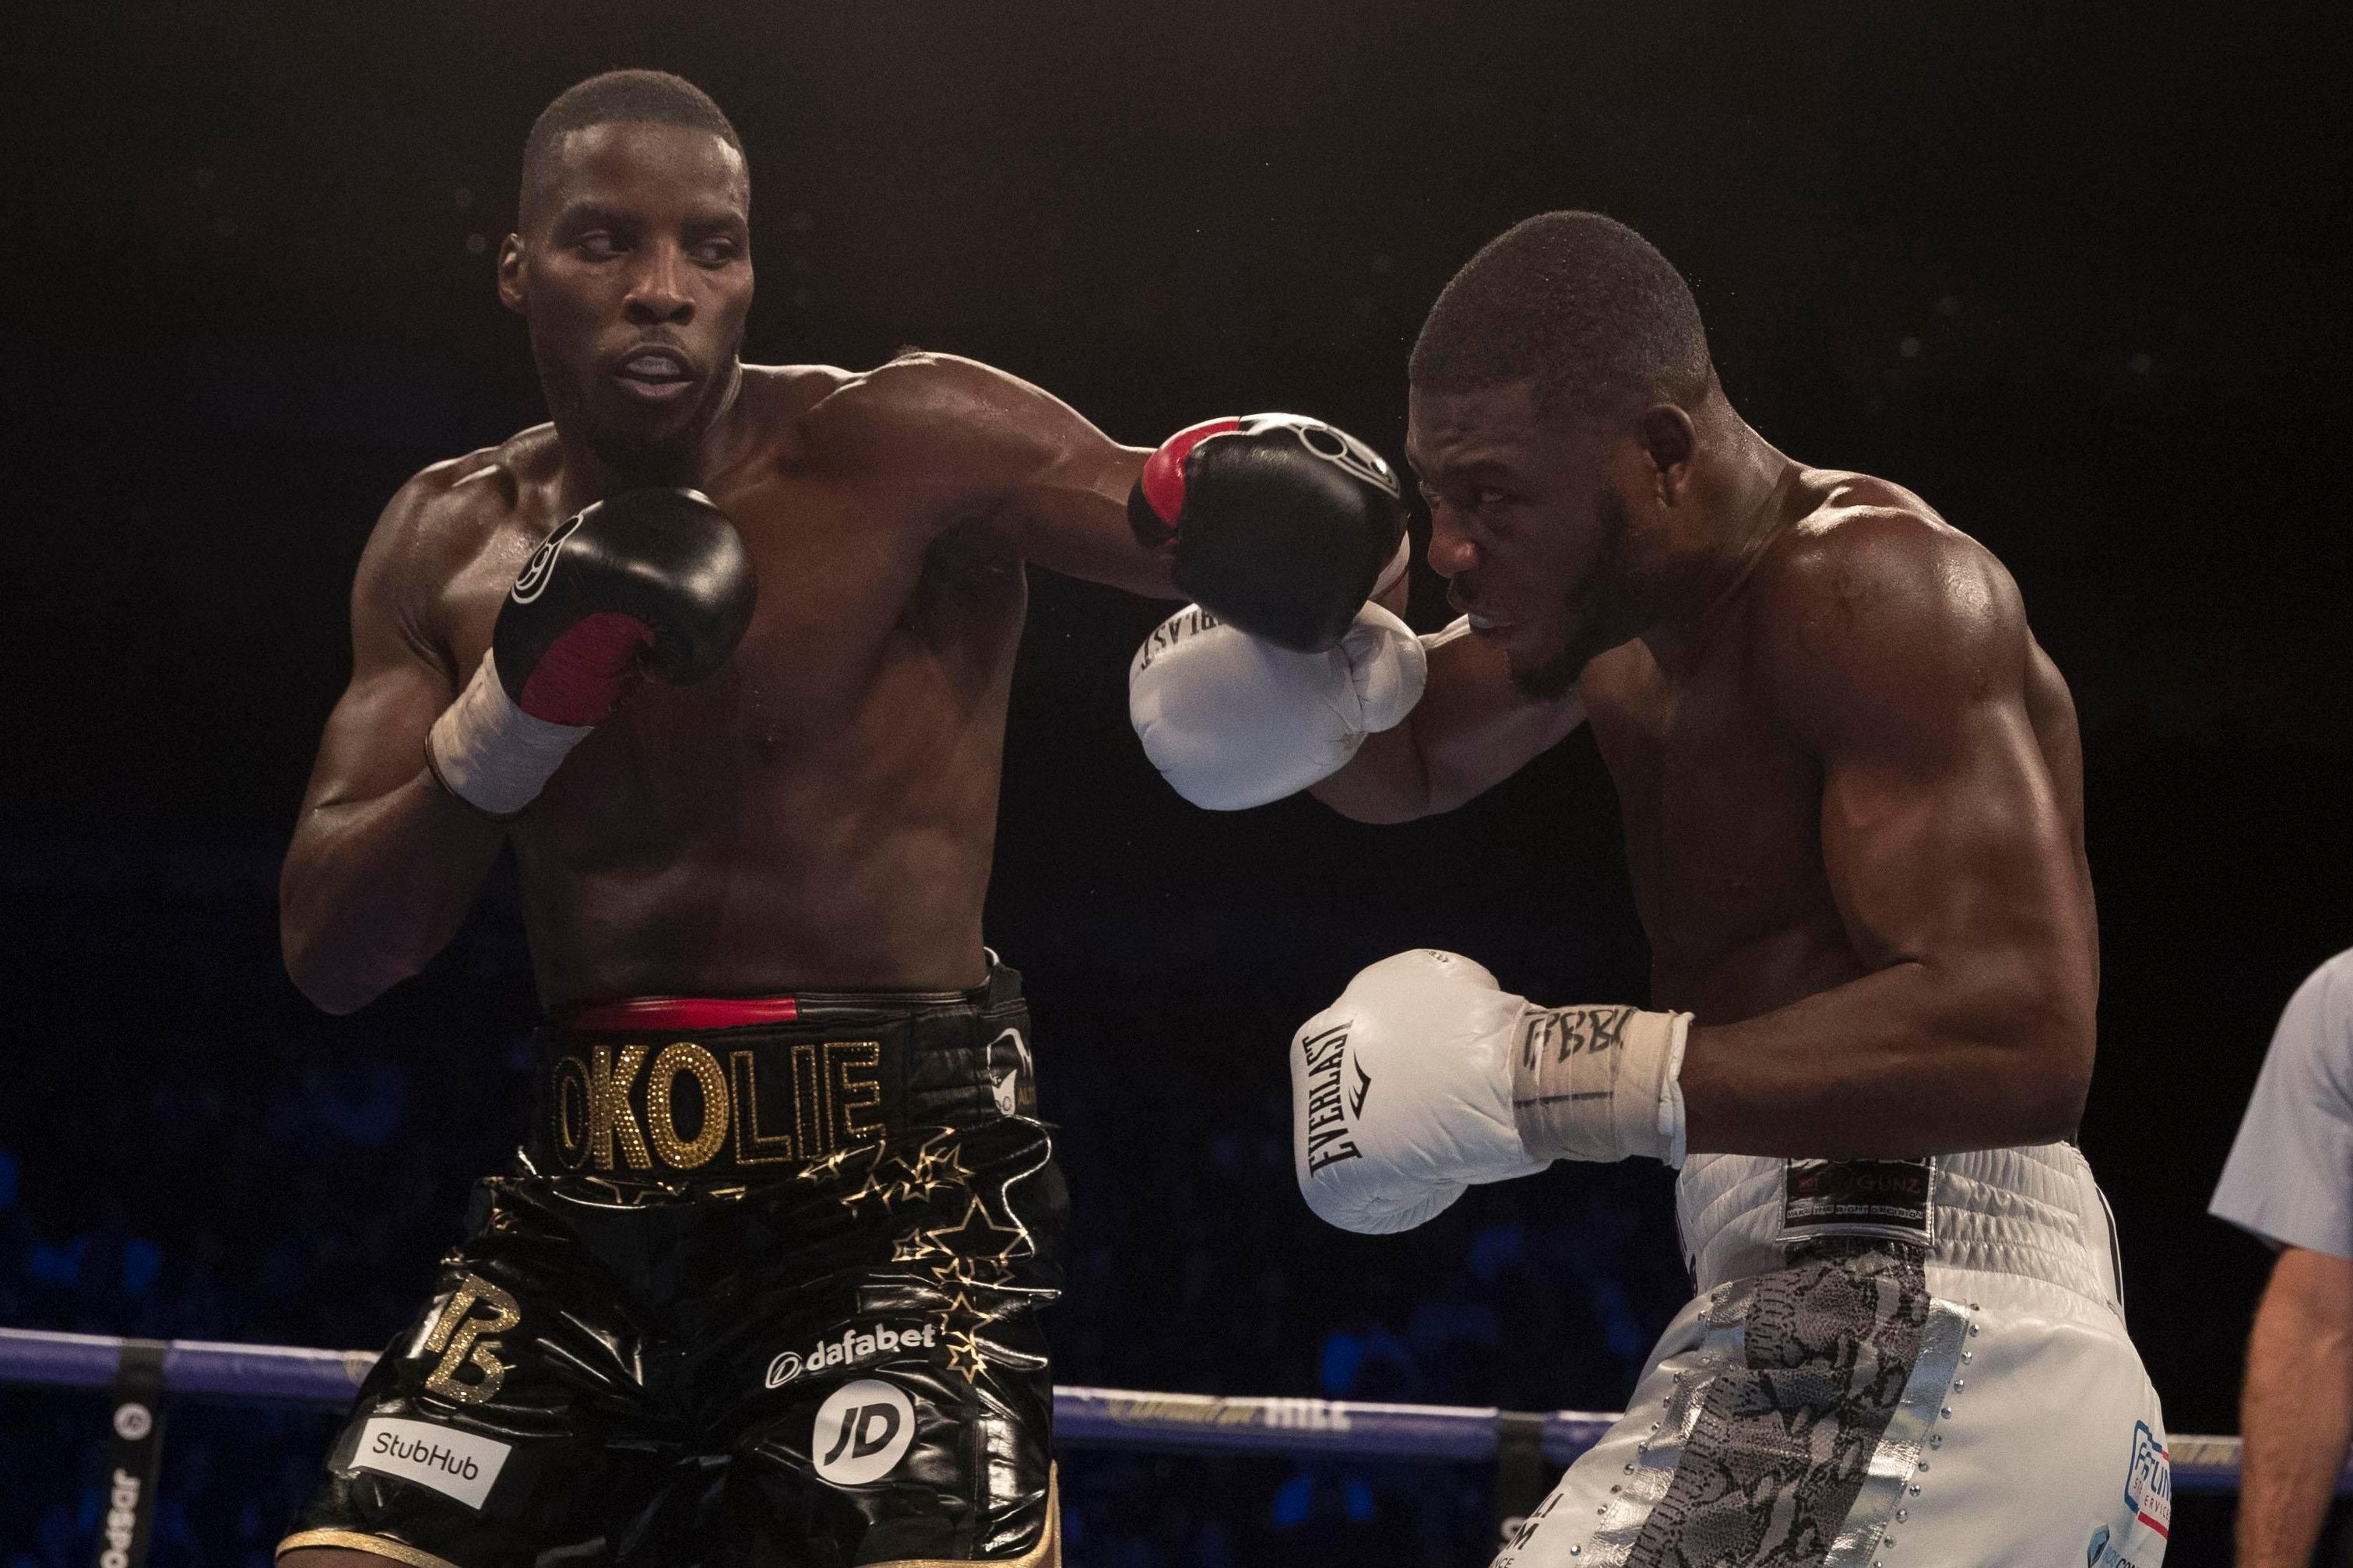 The Swindon based fighter faces the up-and-coming Okolie